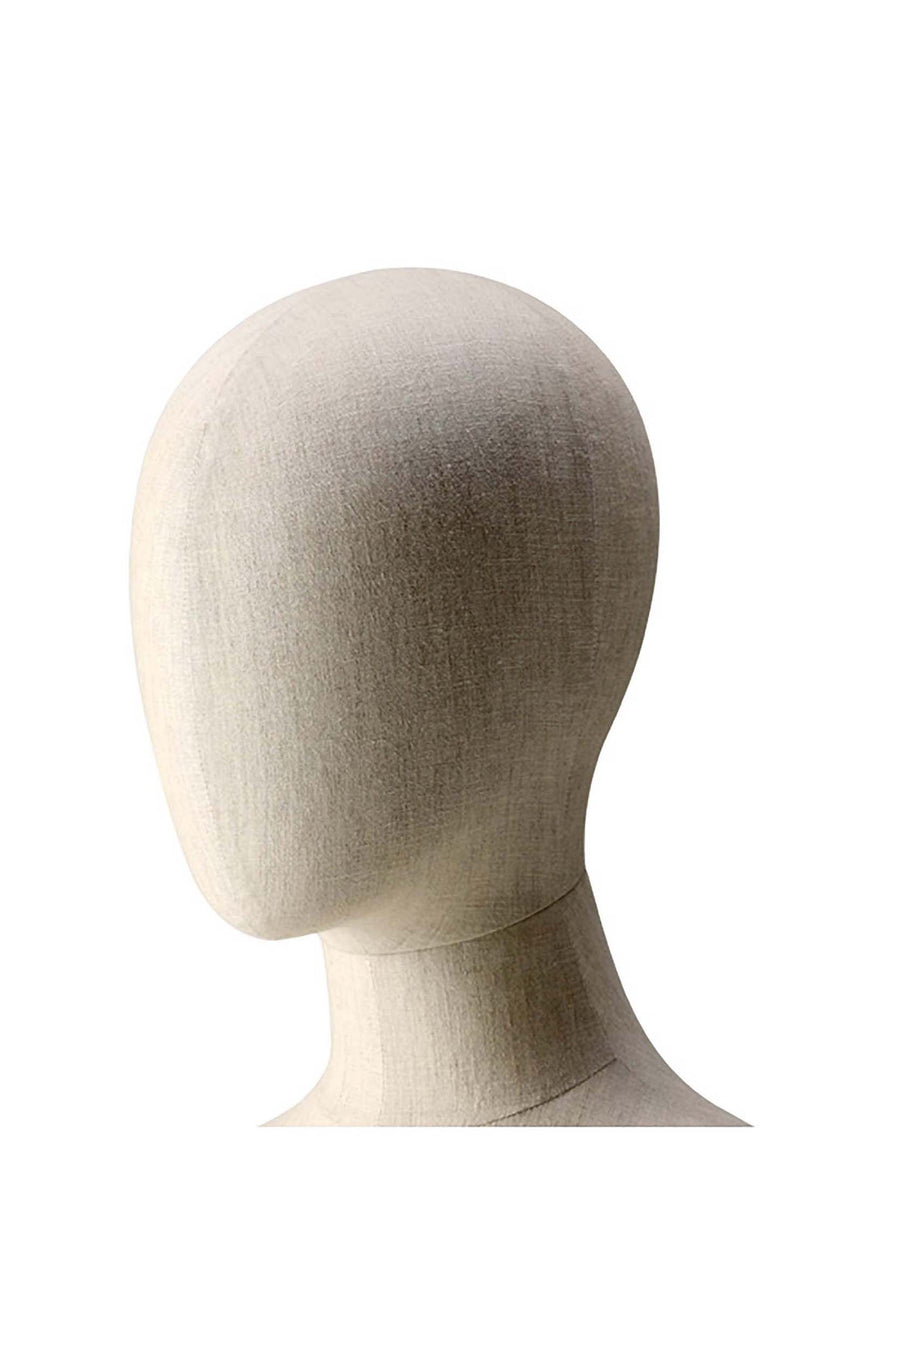 female mannequin head in cotton vintage fabric